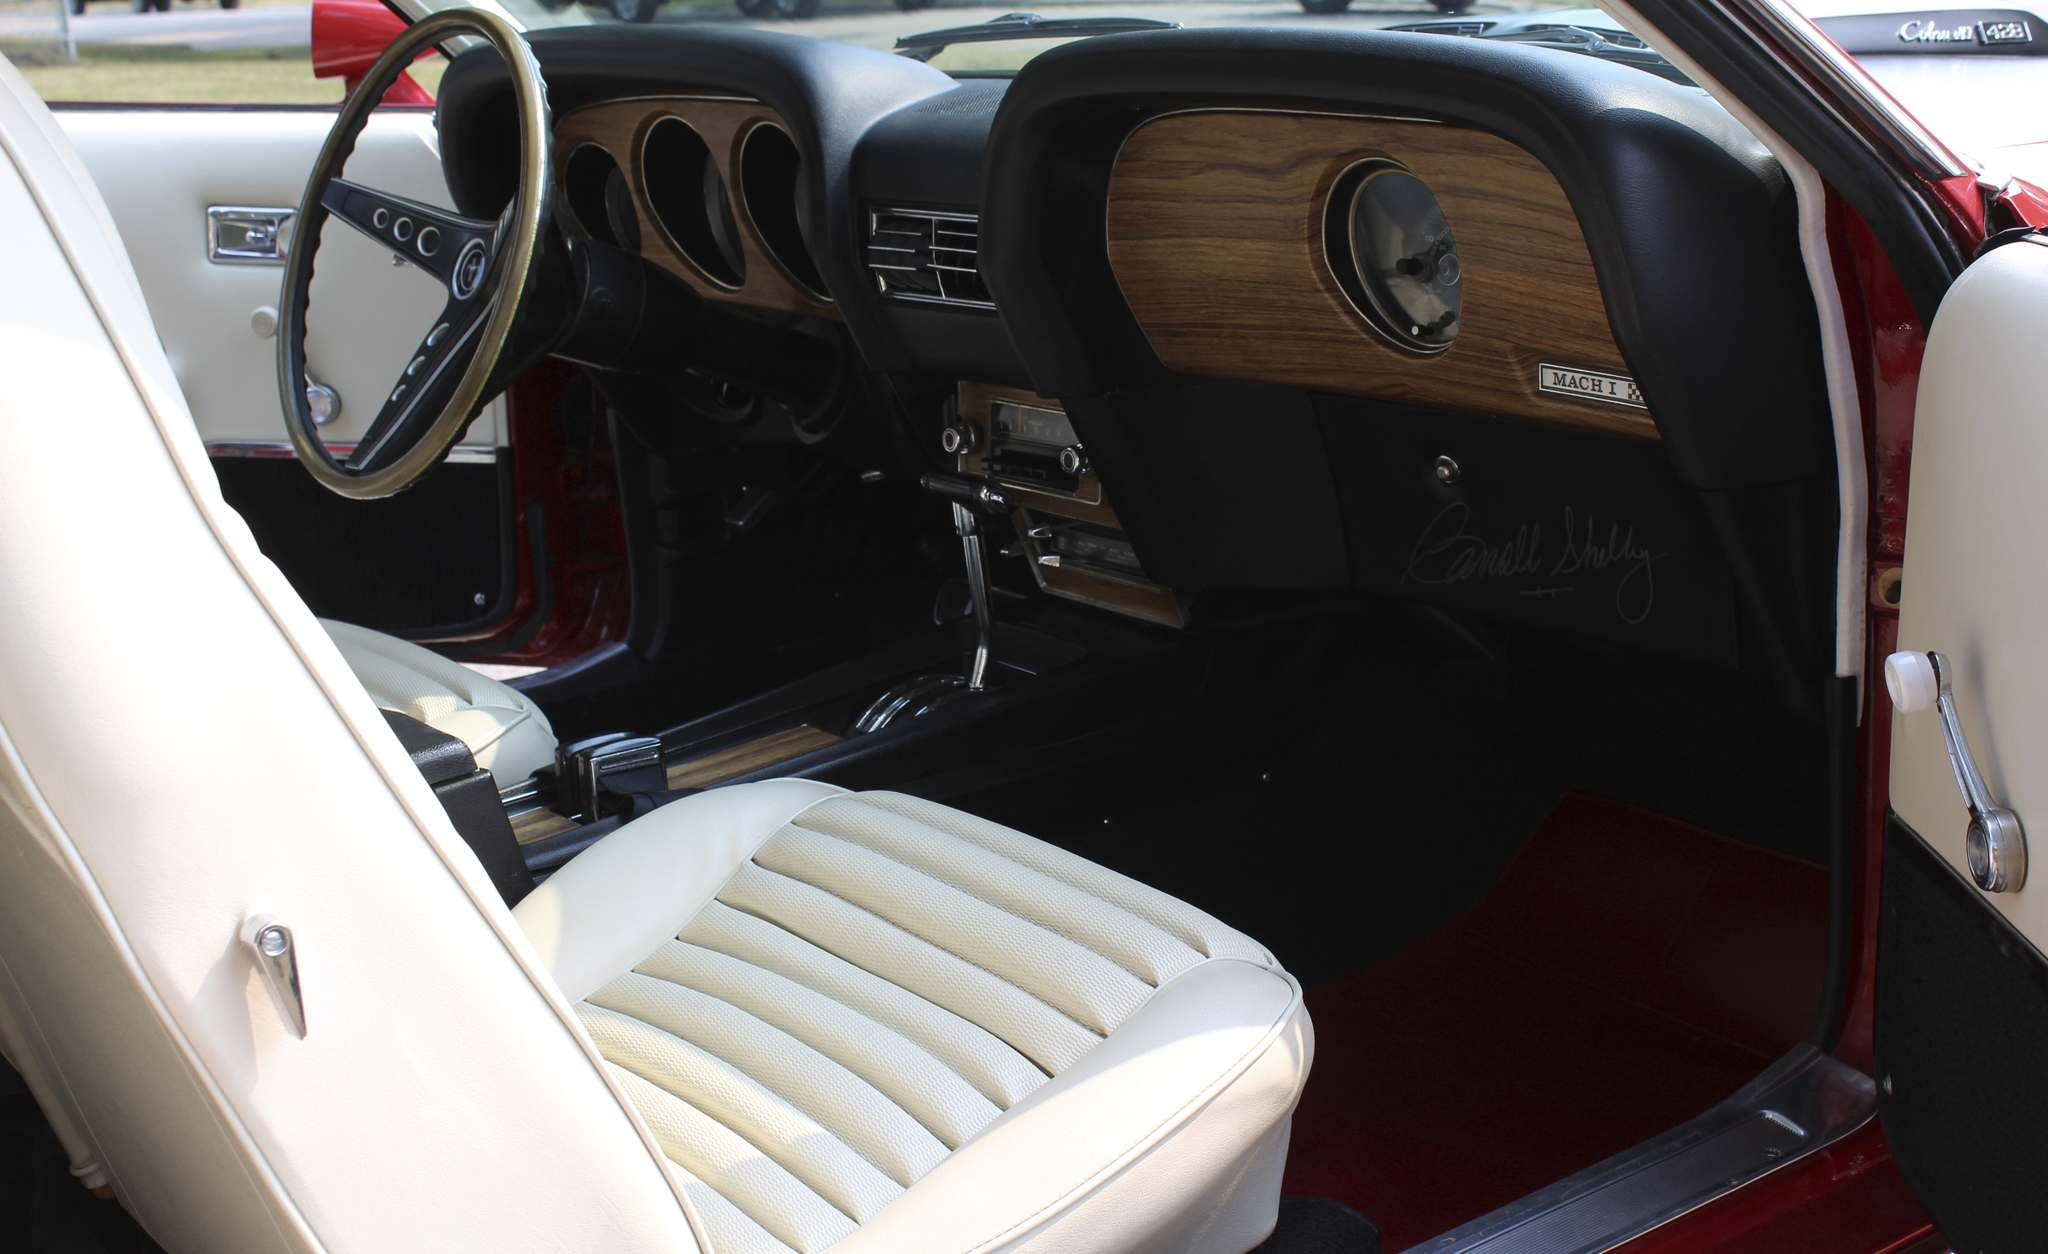 Larry D'ArgisThe interior features white Clarion knit vinyl upholstery.